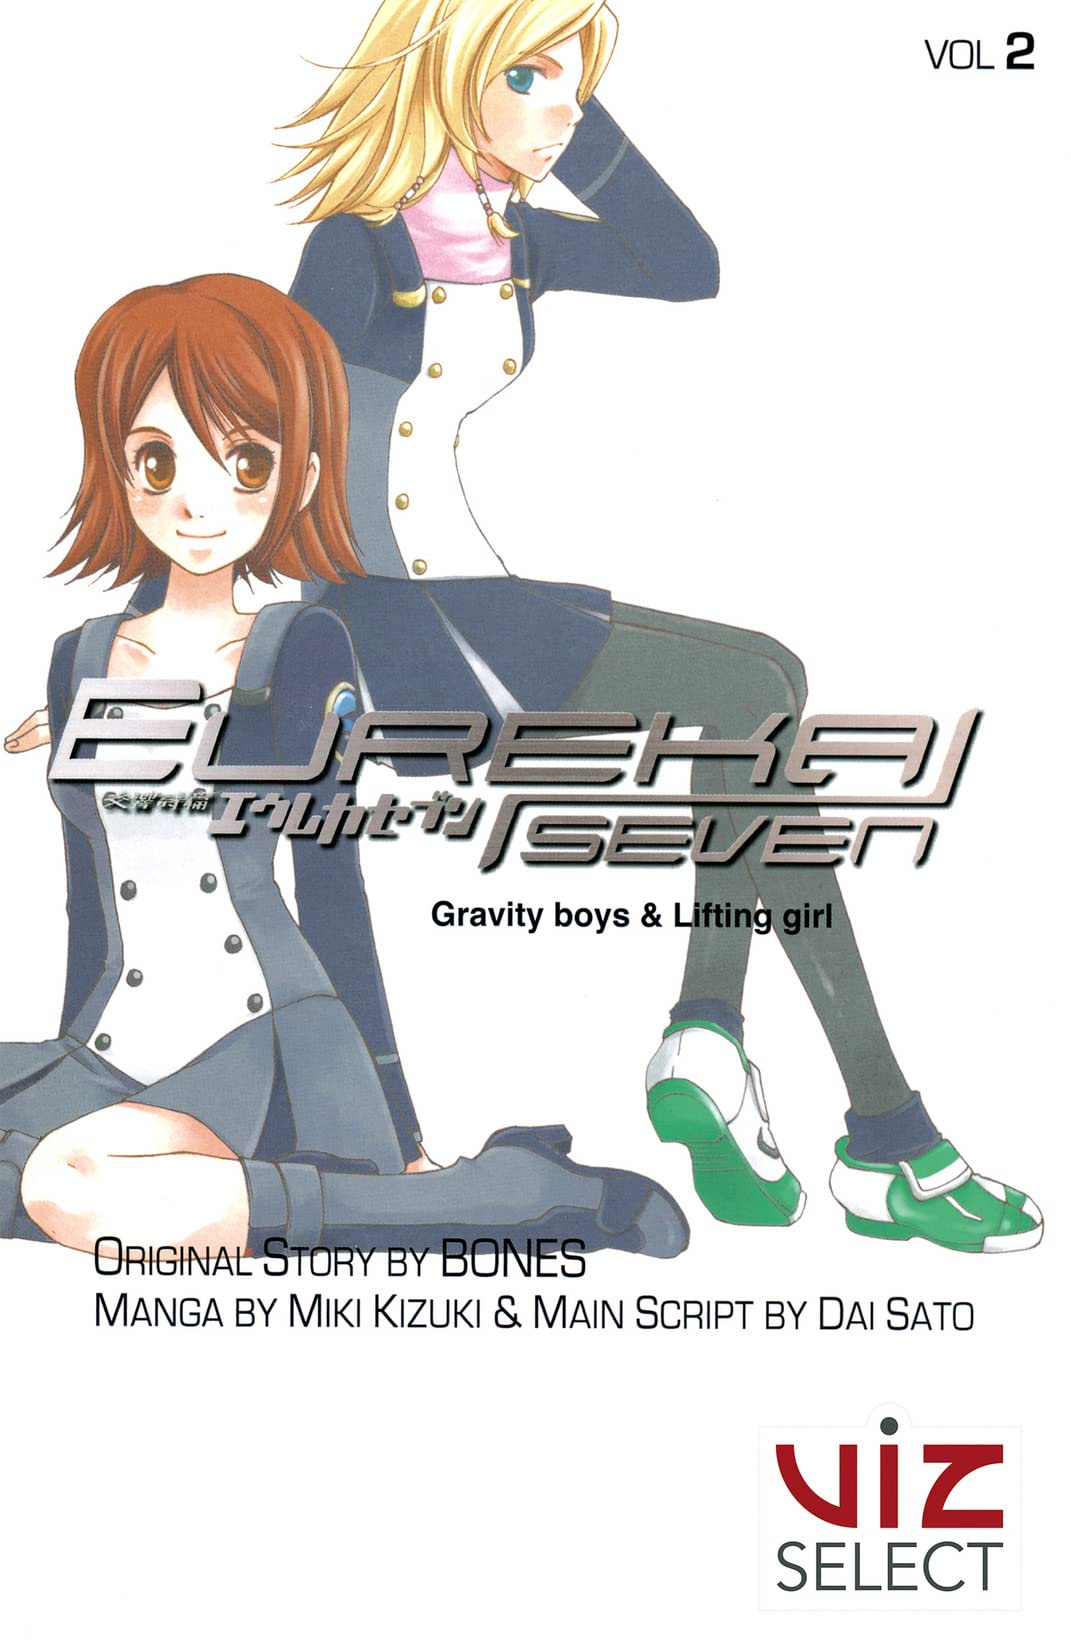 Eureka Seven: Gravity Boys & Lifting Girl Vol. 2